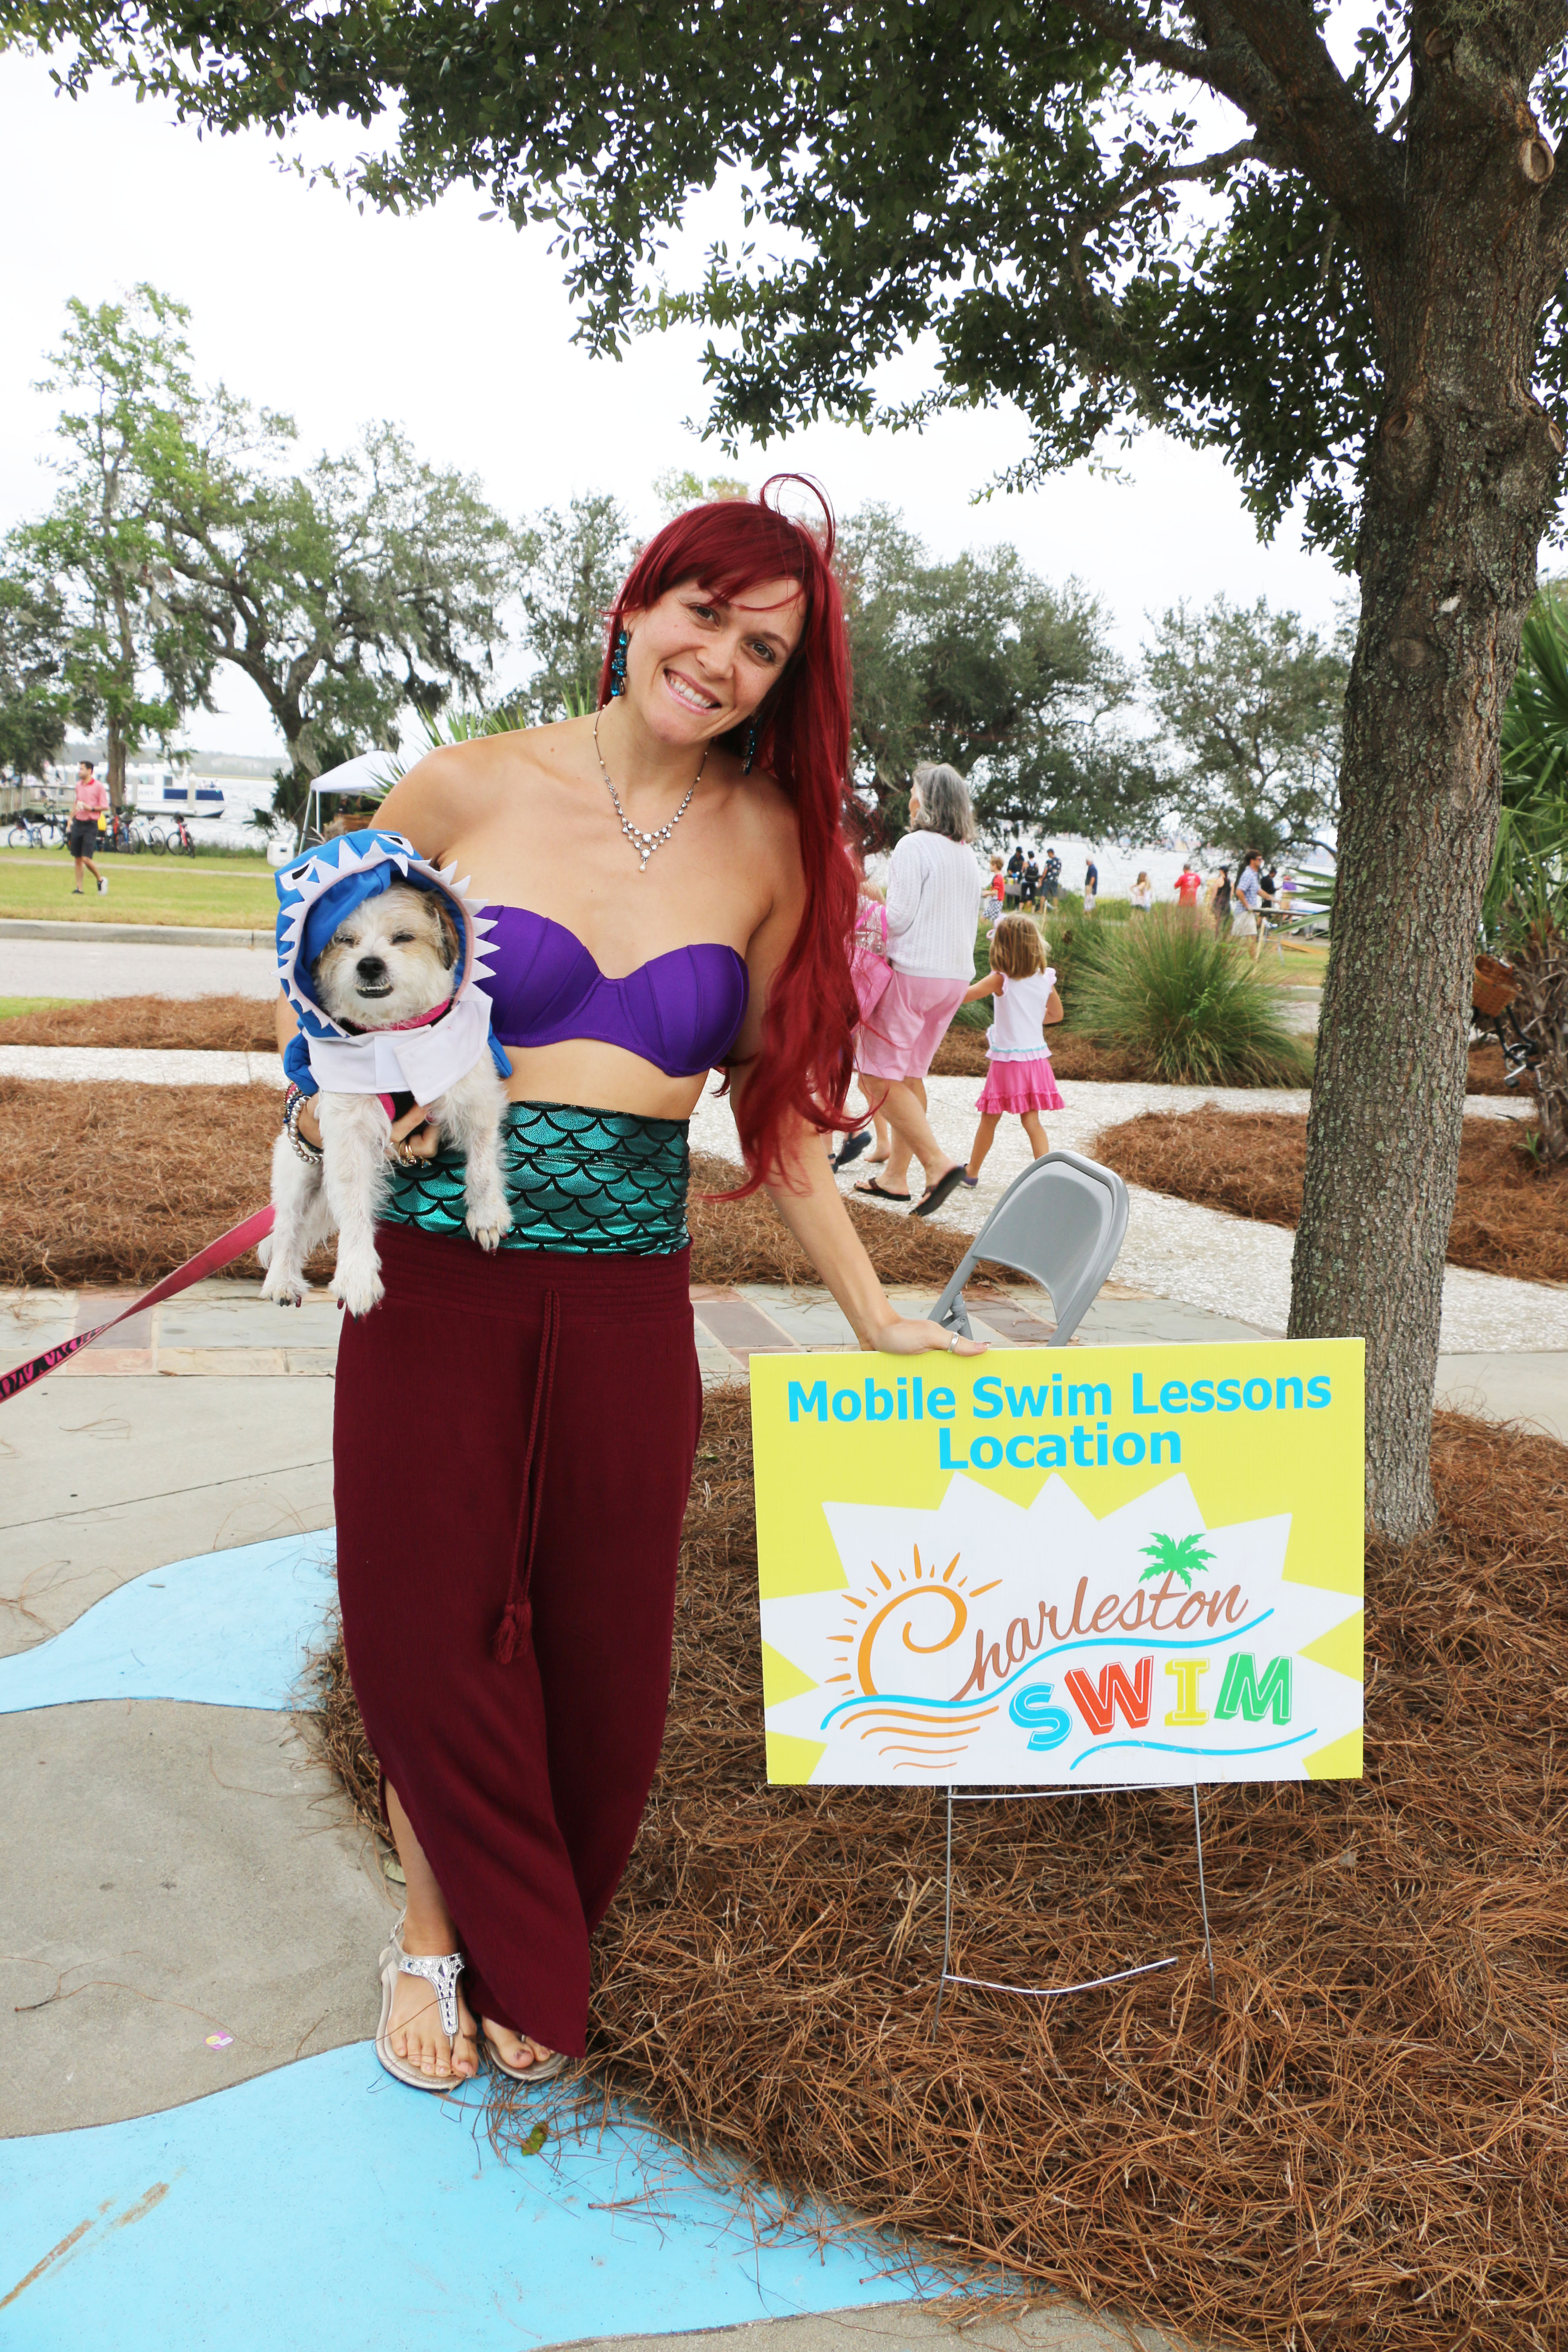 Amy Hassinger from Charleston Swim School is dressed as a mermaid with her dog, Blossom.